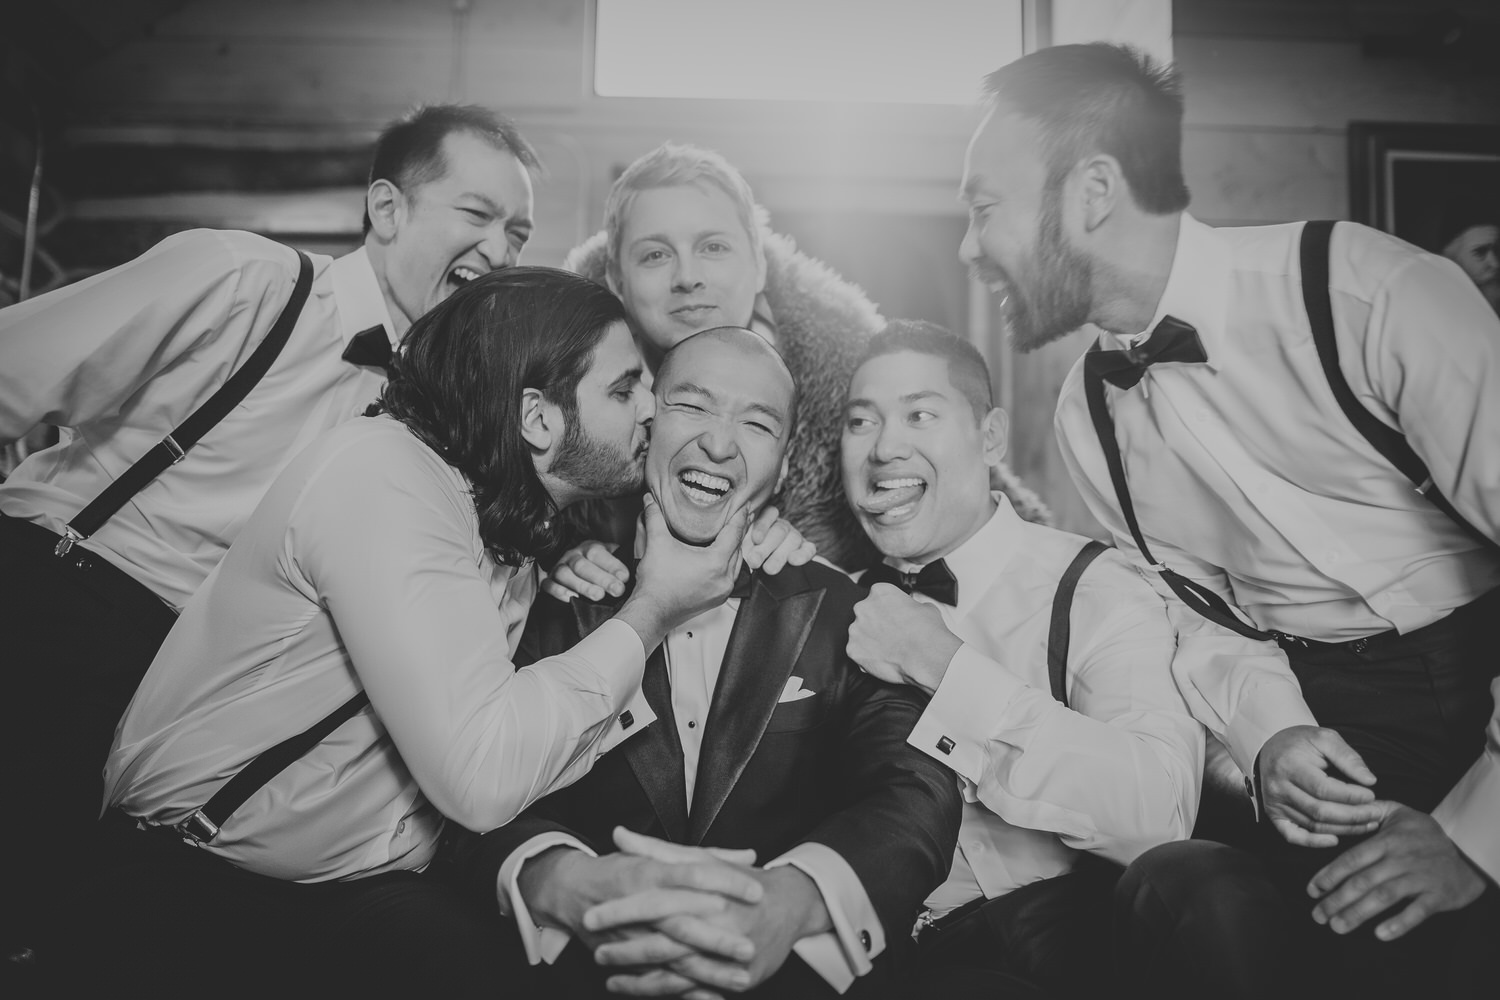 When the wedding takes place in Bozeman Montana some pictures become timeless. This one was best expressed in black and white.